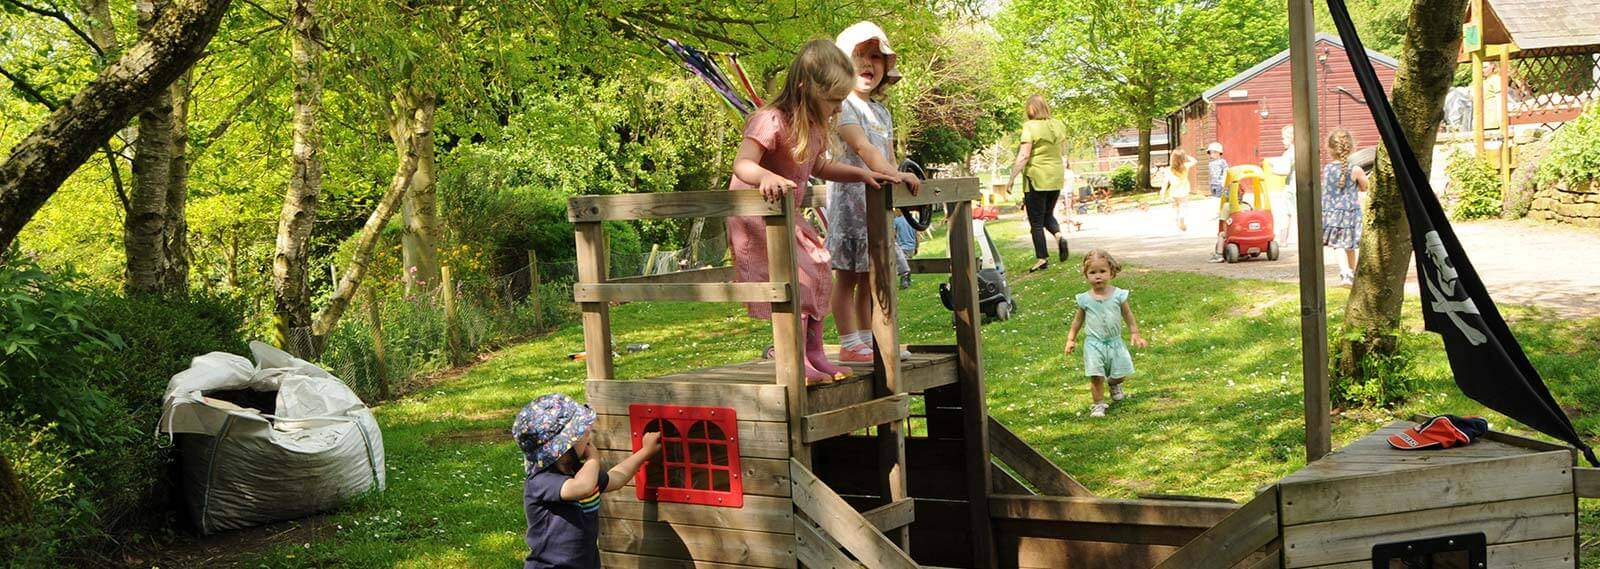 School Holiday Childcare - Enchanted Garden Day Nursery Mansfield